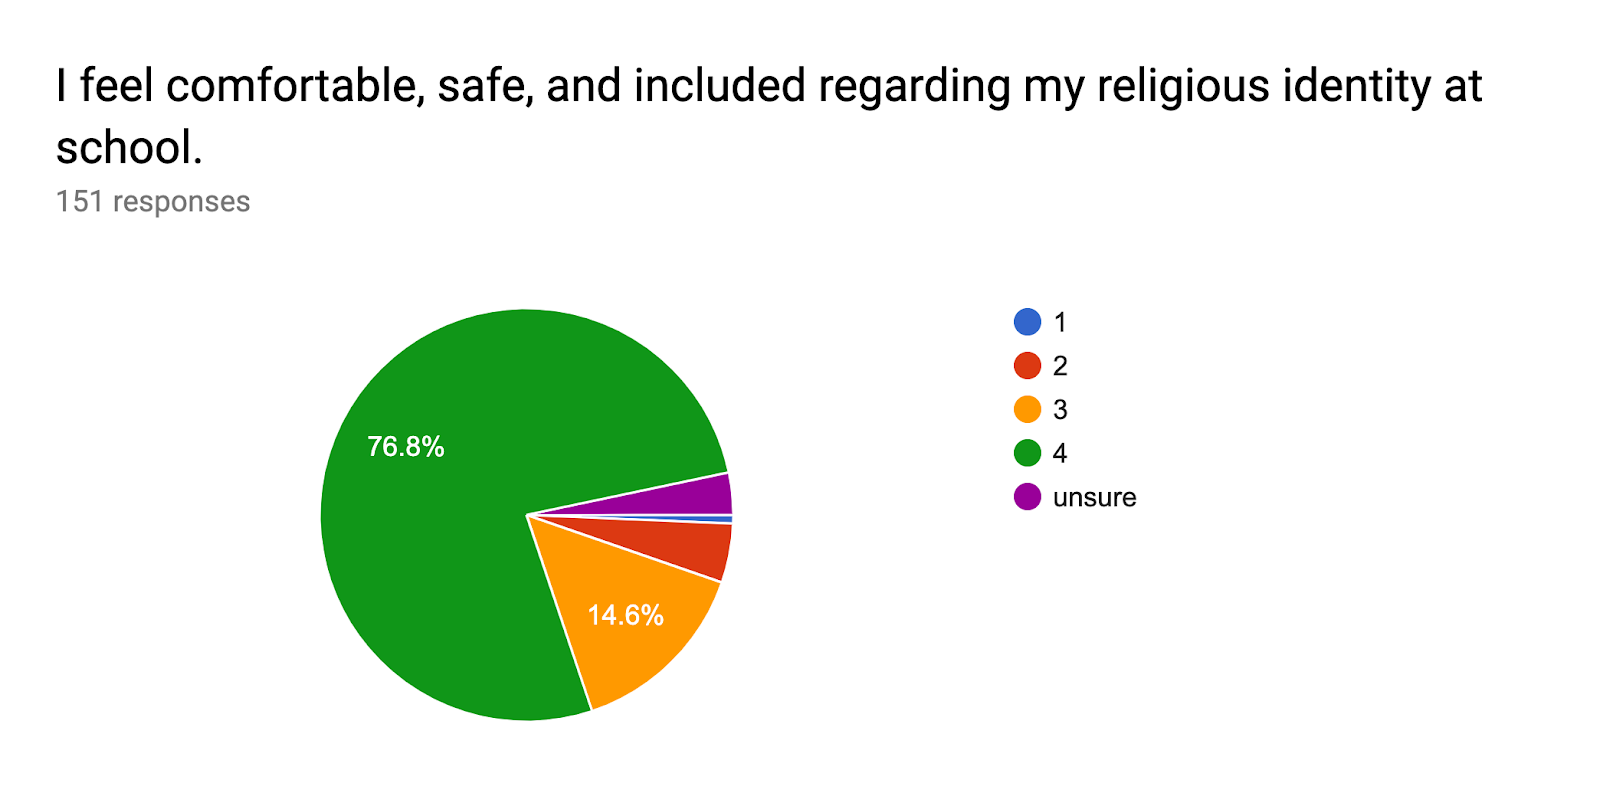 Forms response chart. Question title: I feel comfortable, safe, and included regarding my religious identity at school.. Number of responses: 151 responses.